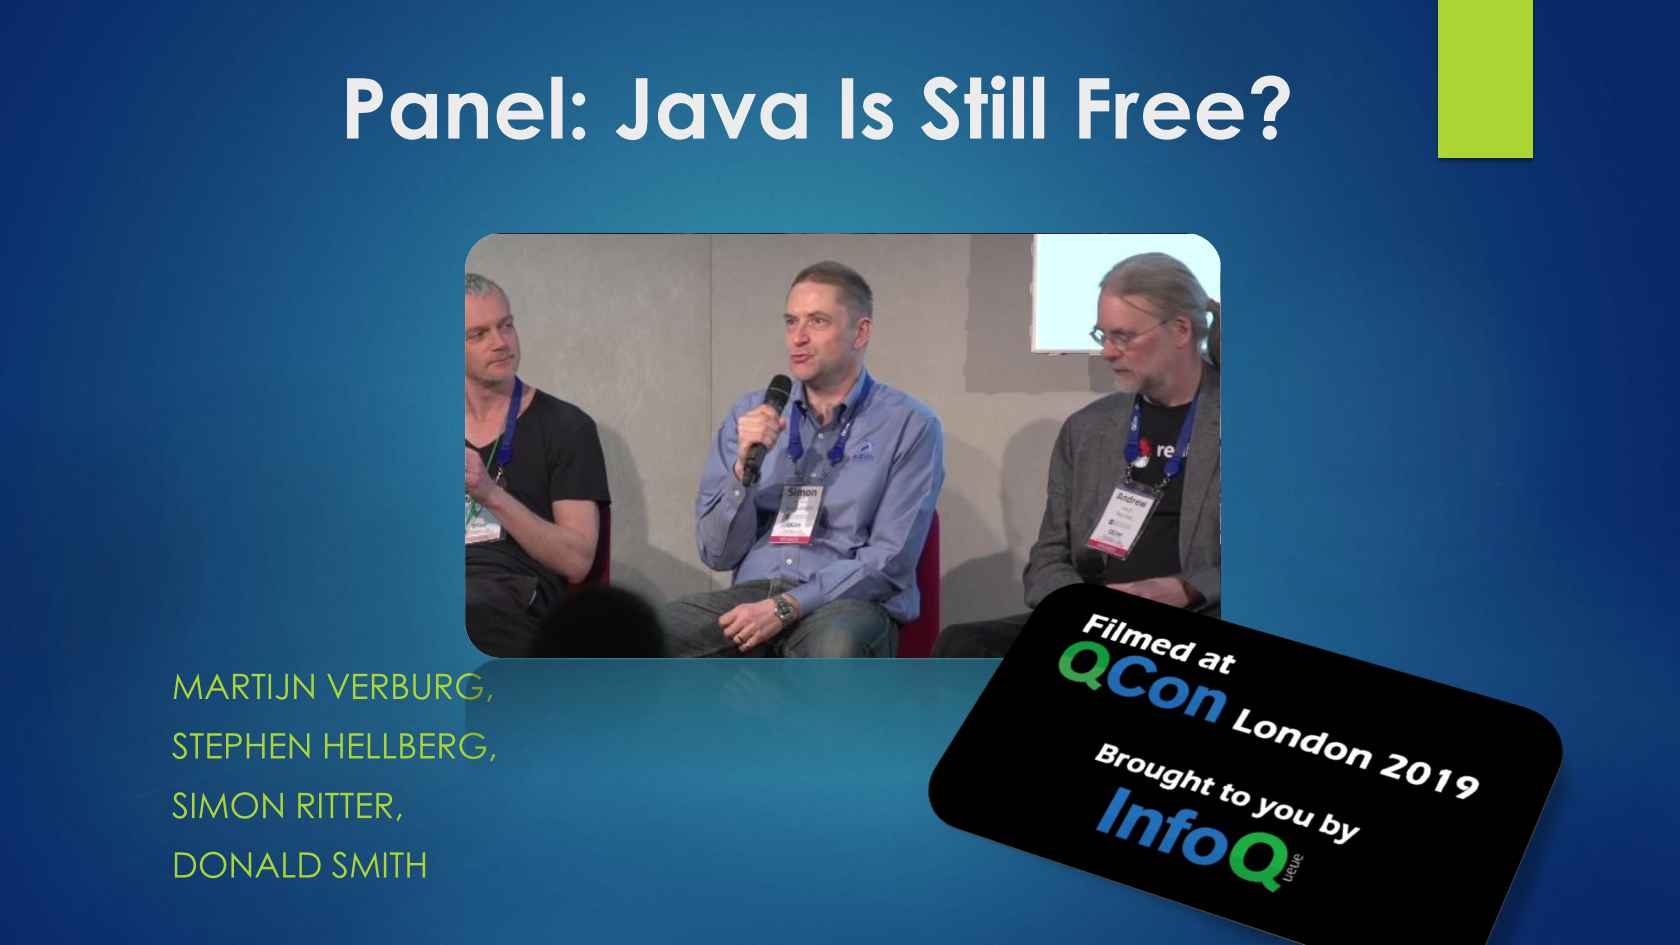 Panel: Java Is Still Free?